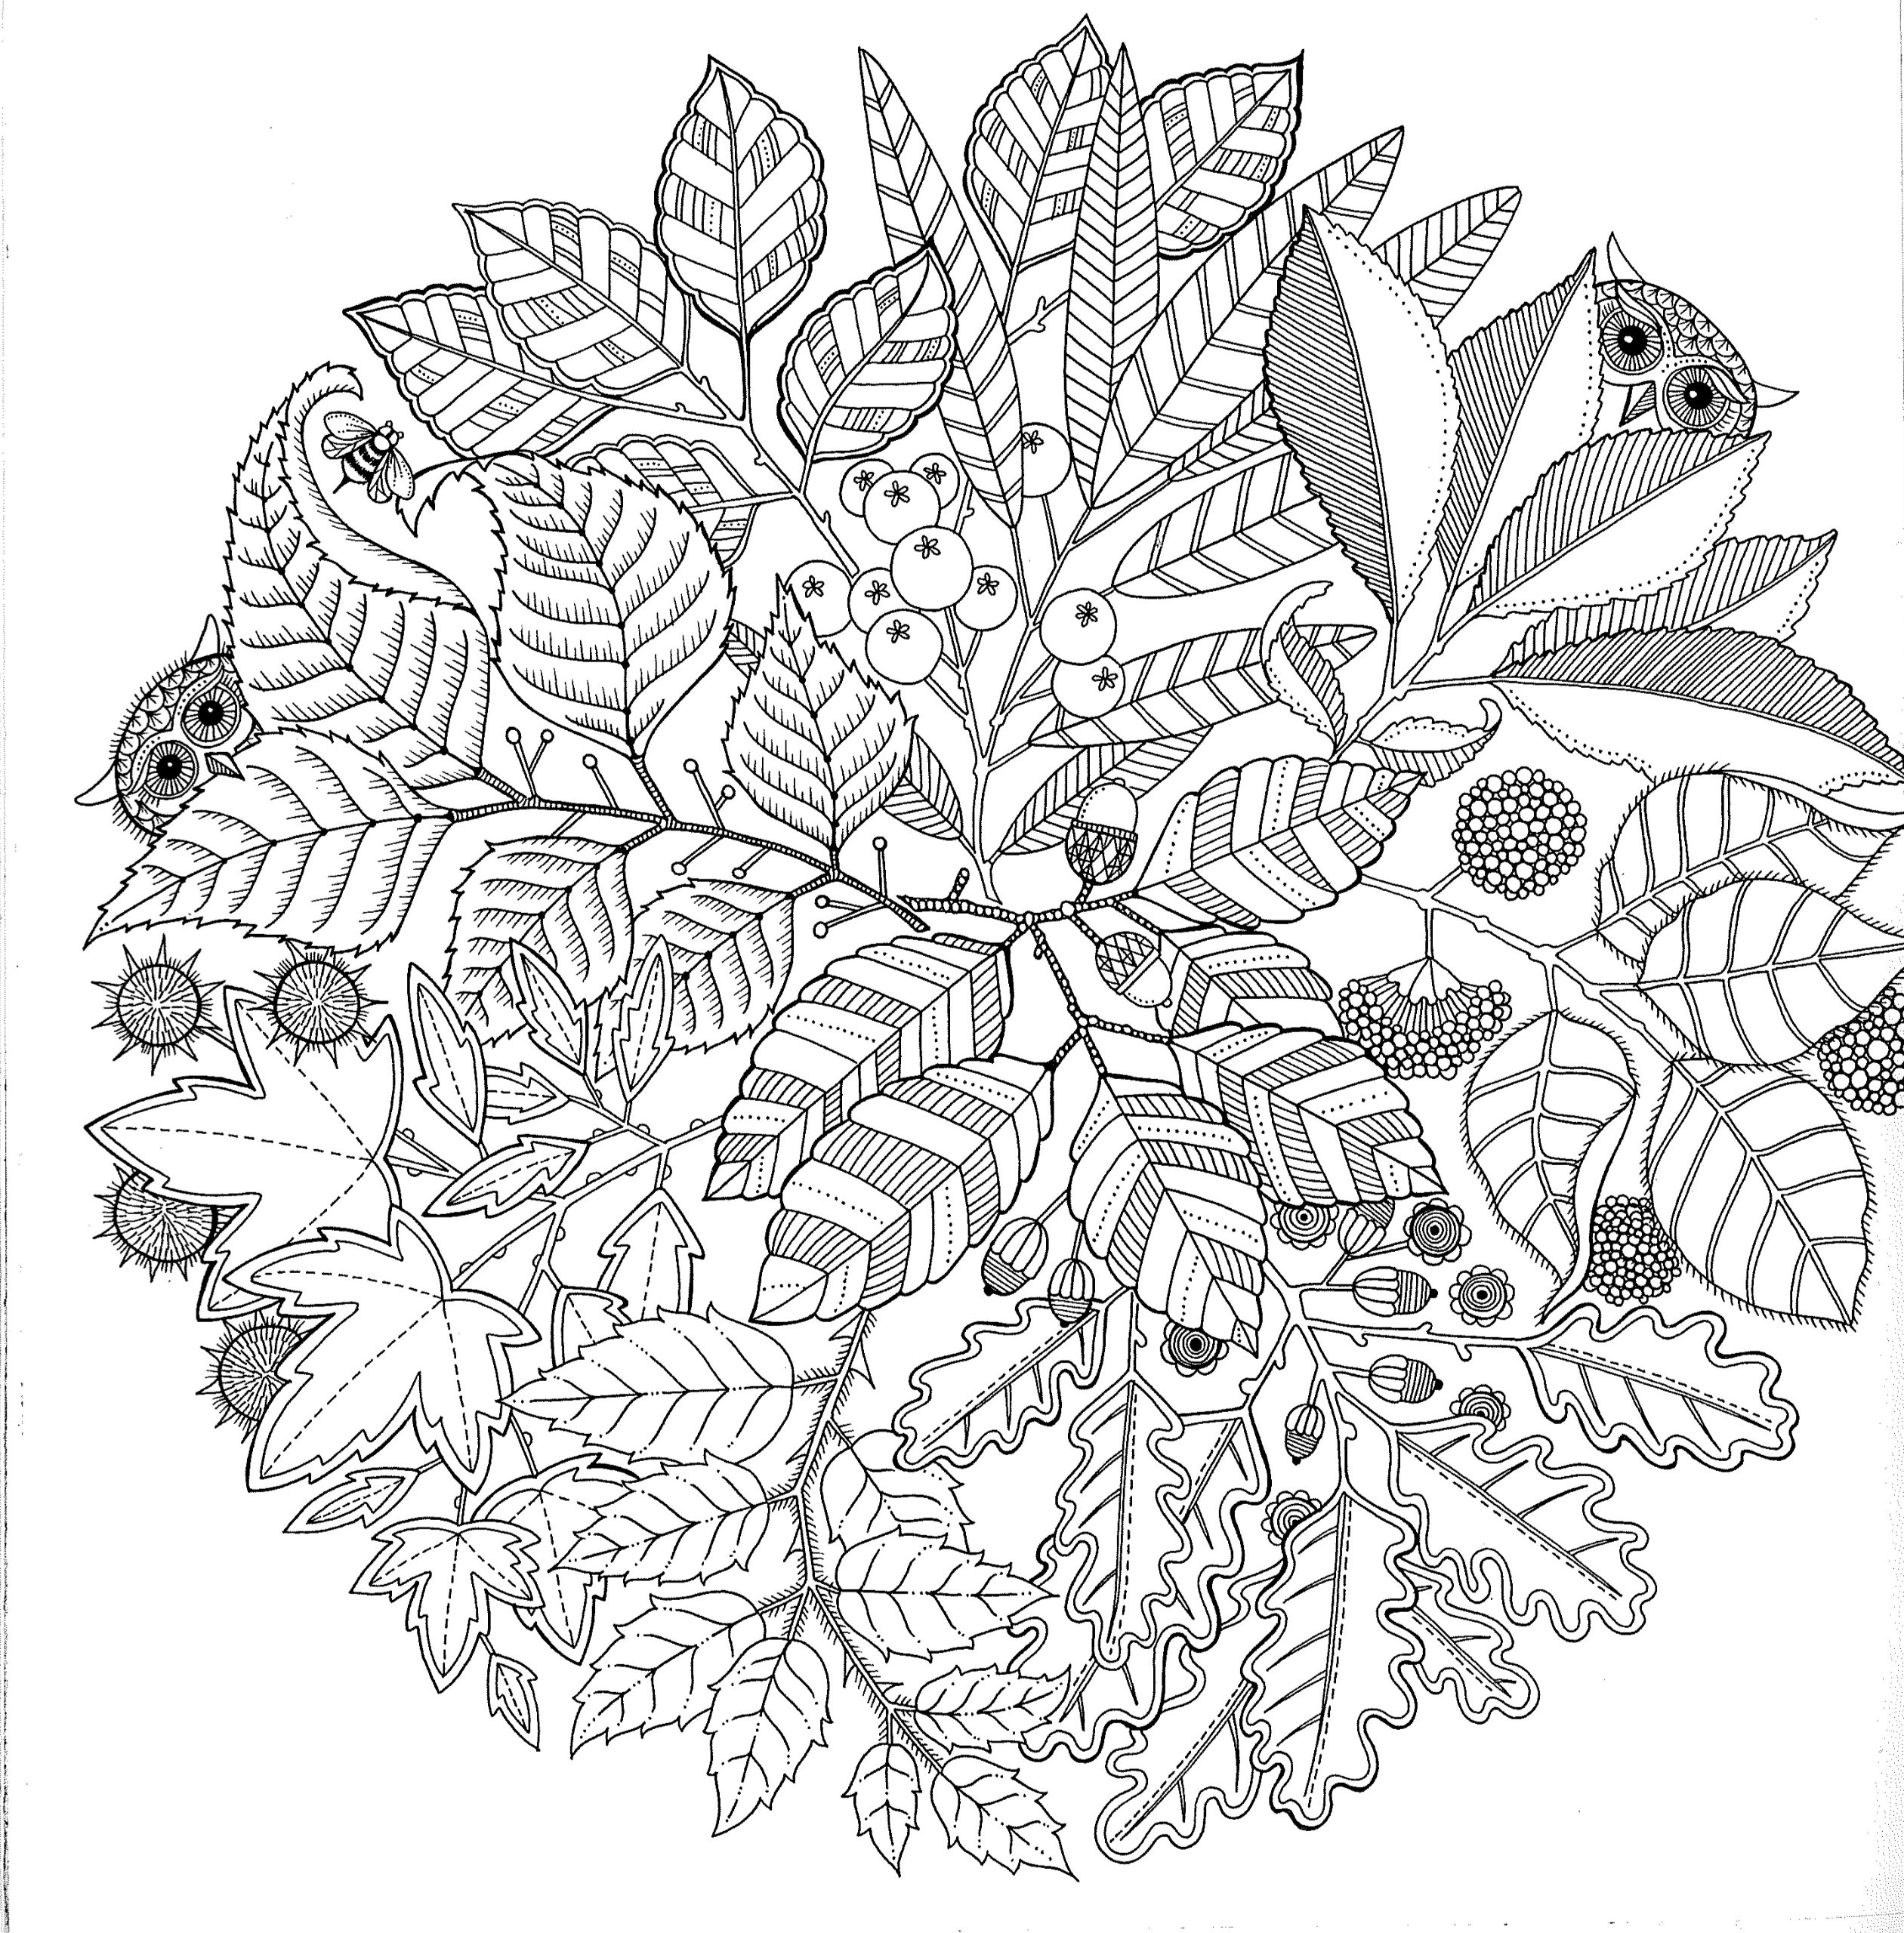 www coloring sheets free printable abstract coloring pages for adults coloring www sheets